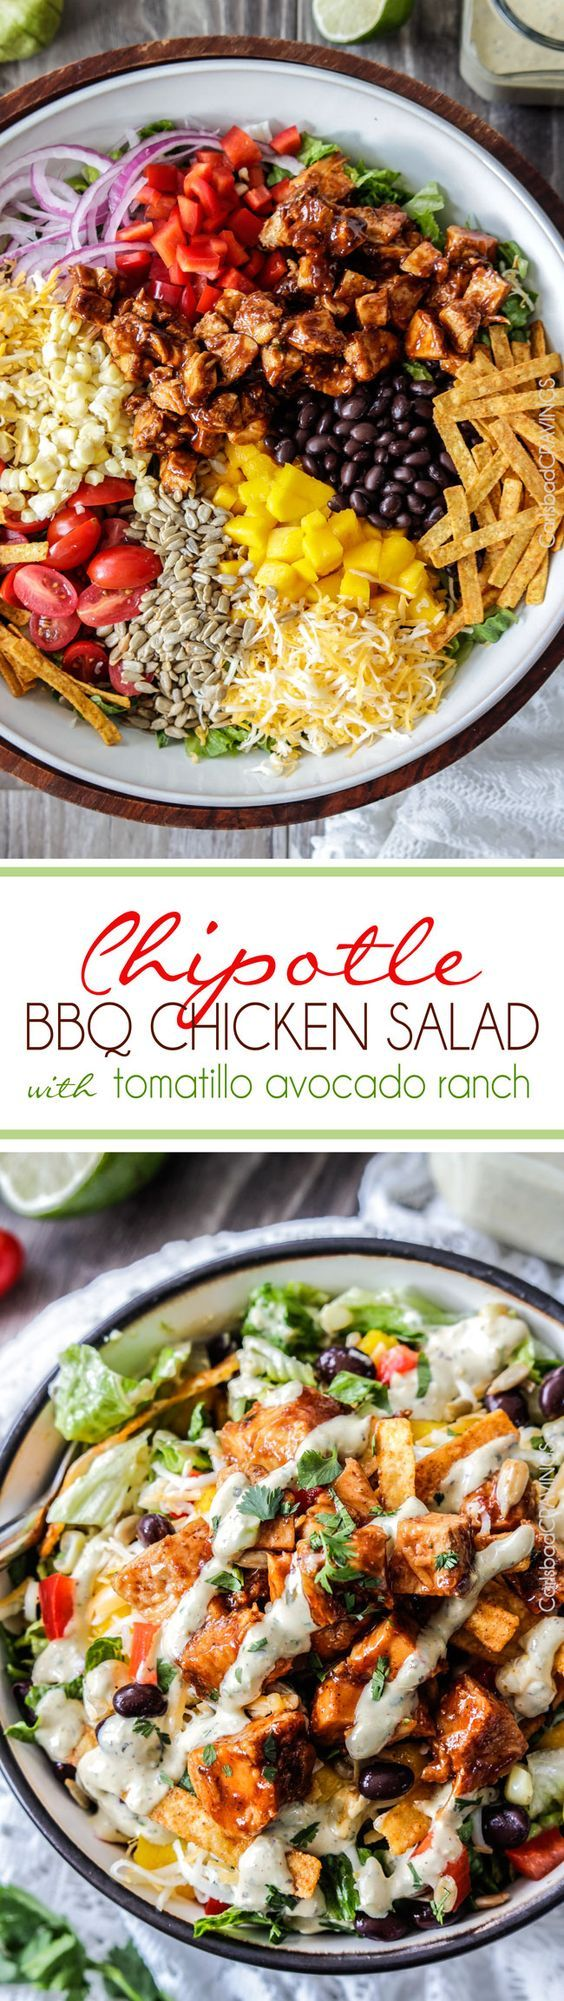 Chipotle BBQ Chicken Salad with Tomatillo Avocado Ranch - WAY better than your favorite restaurant salad at a fraction of the cost packed with crunchy veggies crispy tortilla strips tender barbecue chicken and the most intoxicating dressing!